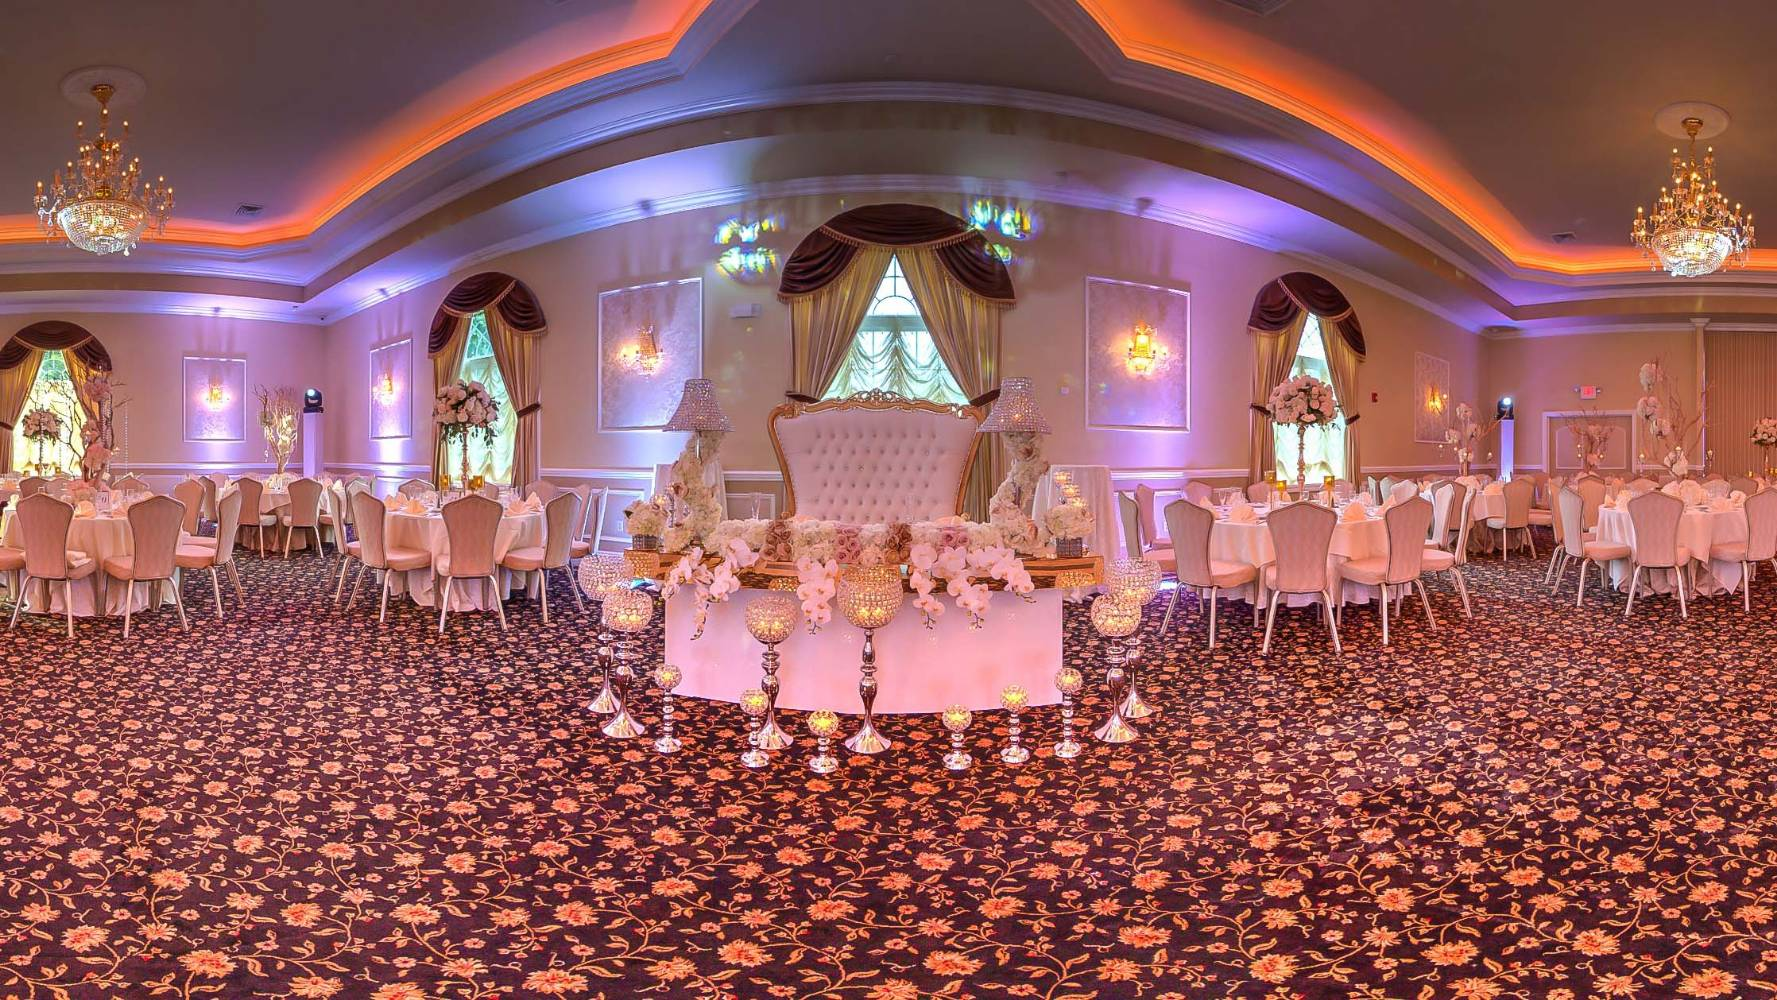 View Virtual Tour of Casa Bianca Banquets in Oak Ridge, NJ | 360 Site Visit